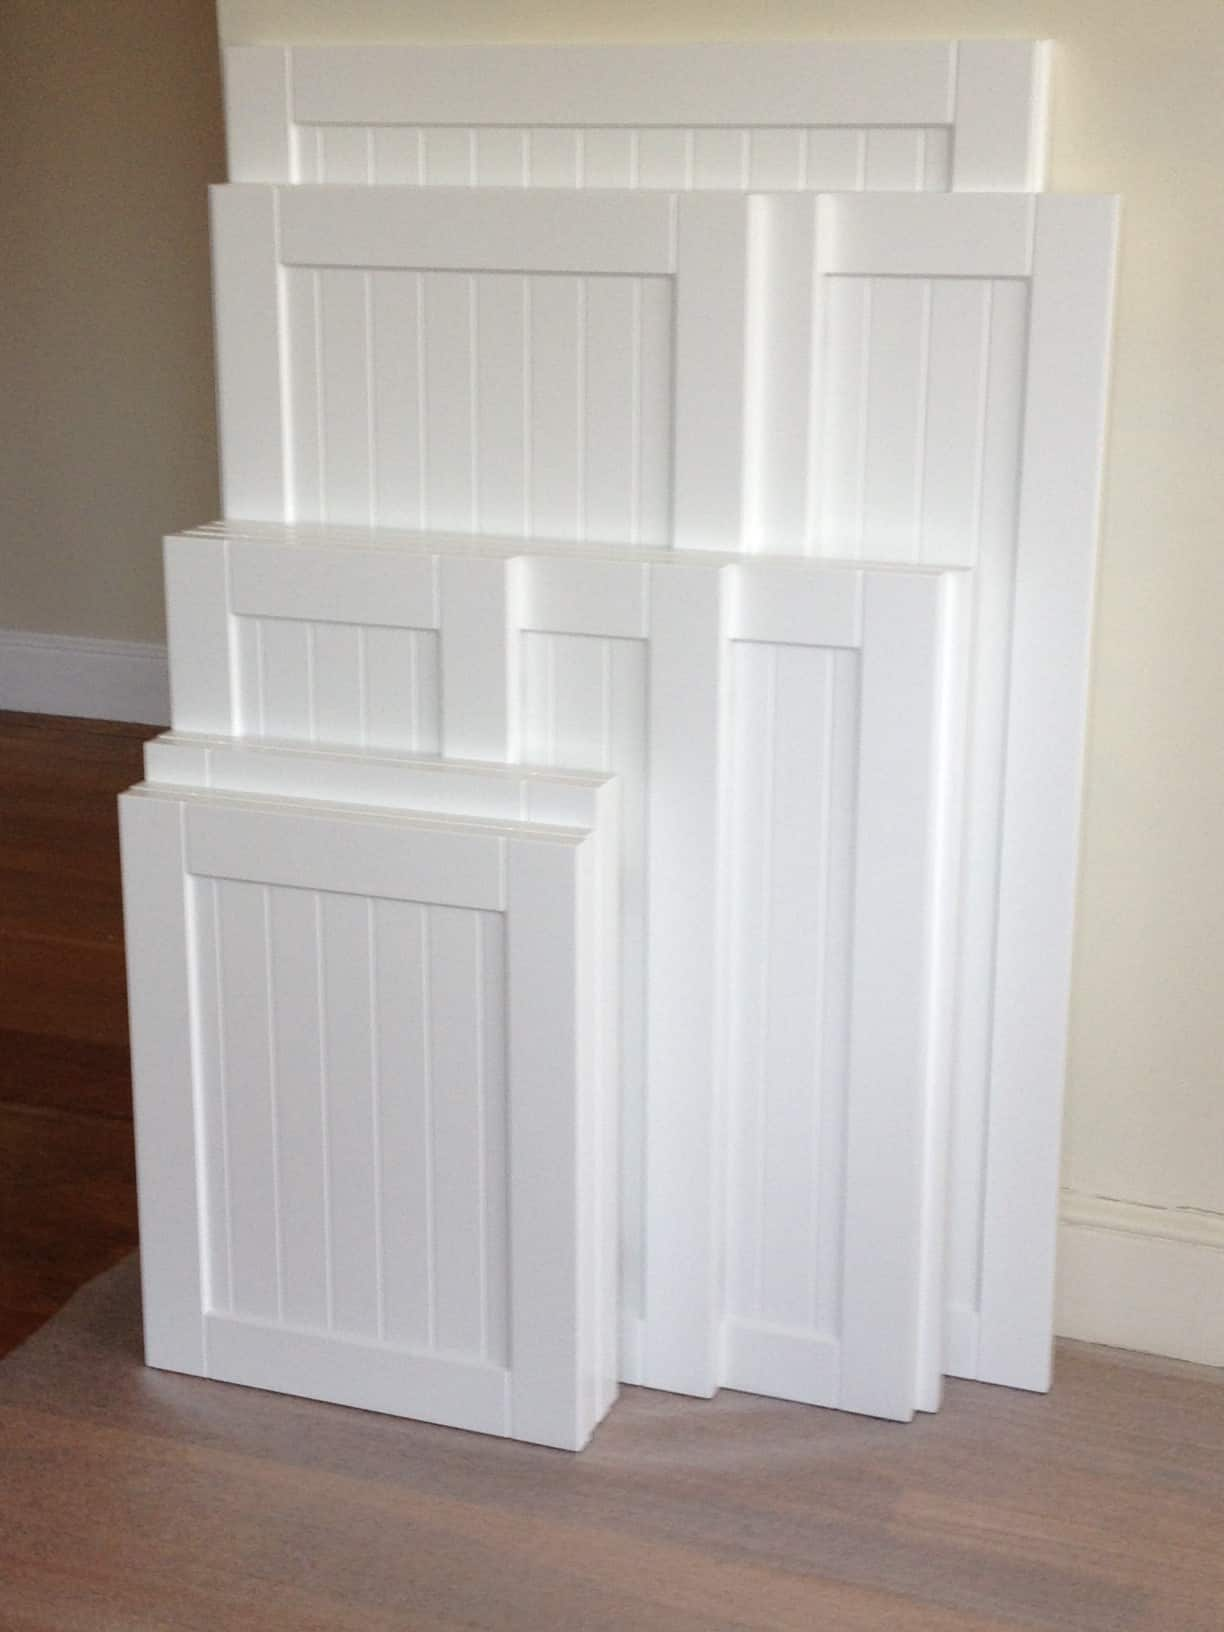 kitchen makeover part 2 kitchen cabinet door replacement Pin this Shaker style cabinet with beadboard accent